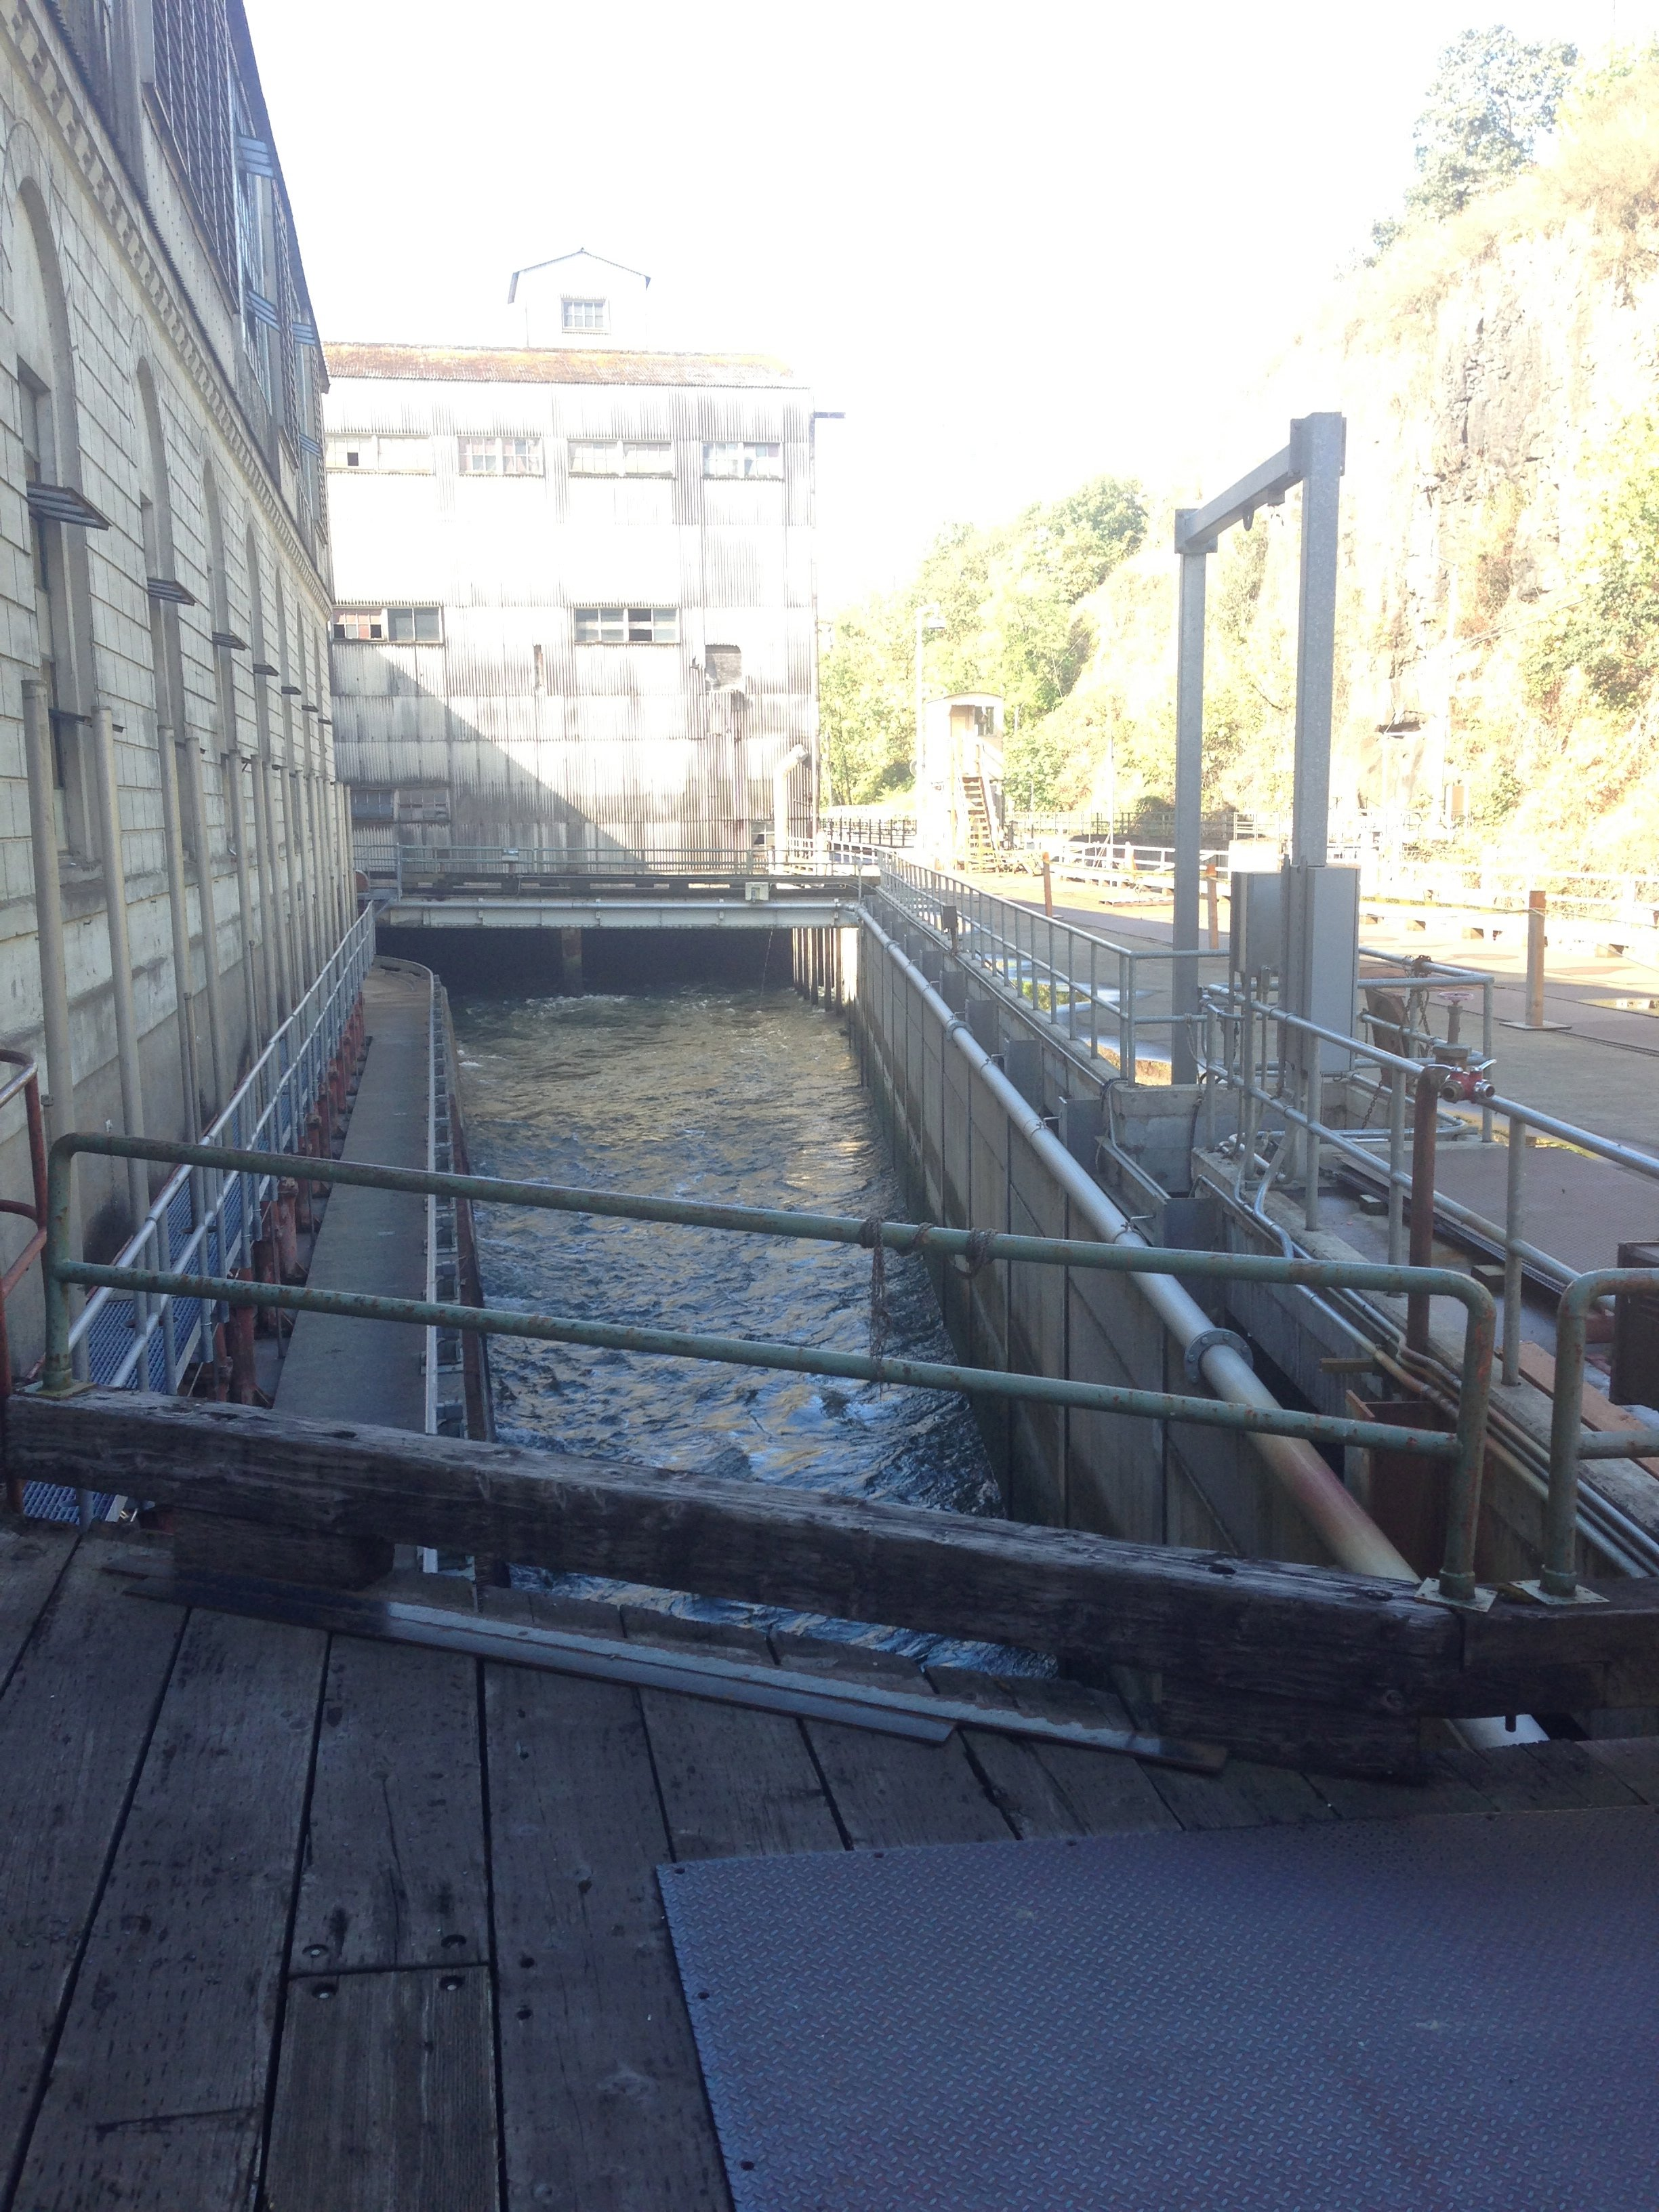 Upper part of fish ladder